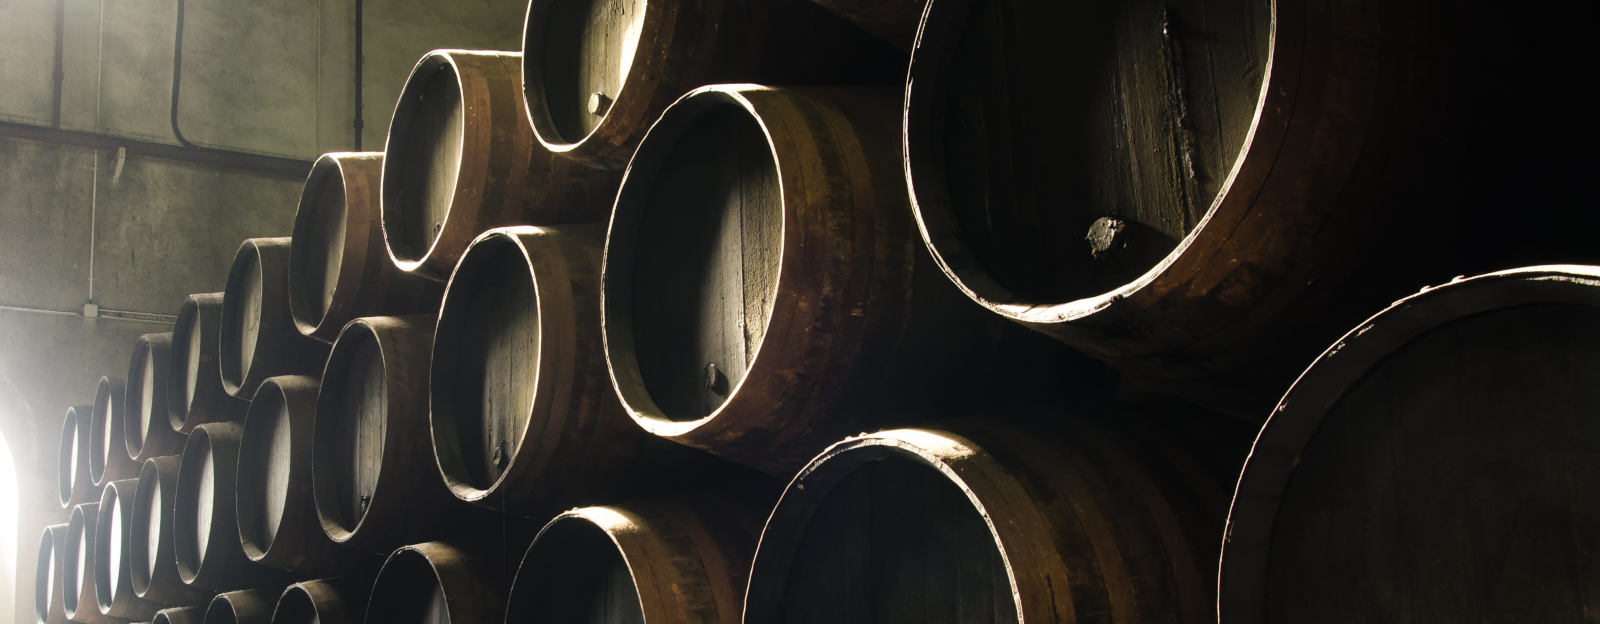 Whisky Maturation Ensuring Stock is Protected - Insights Post